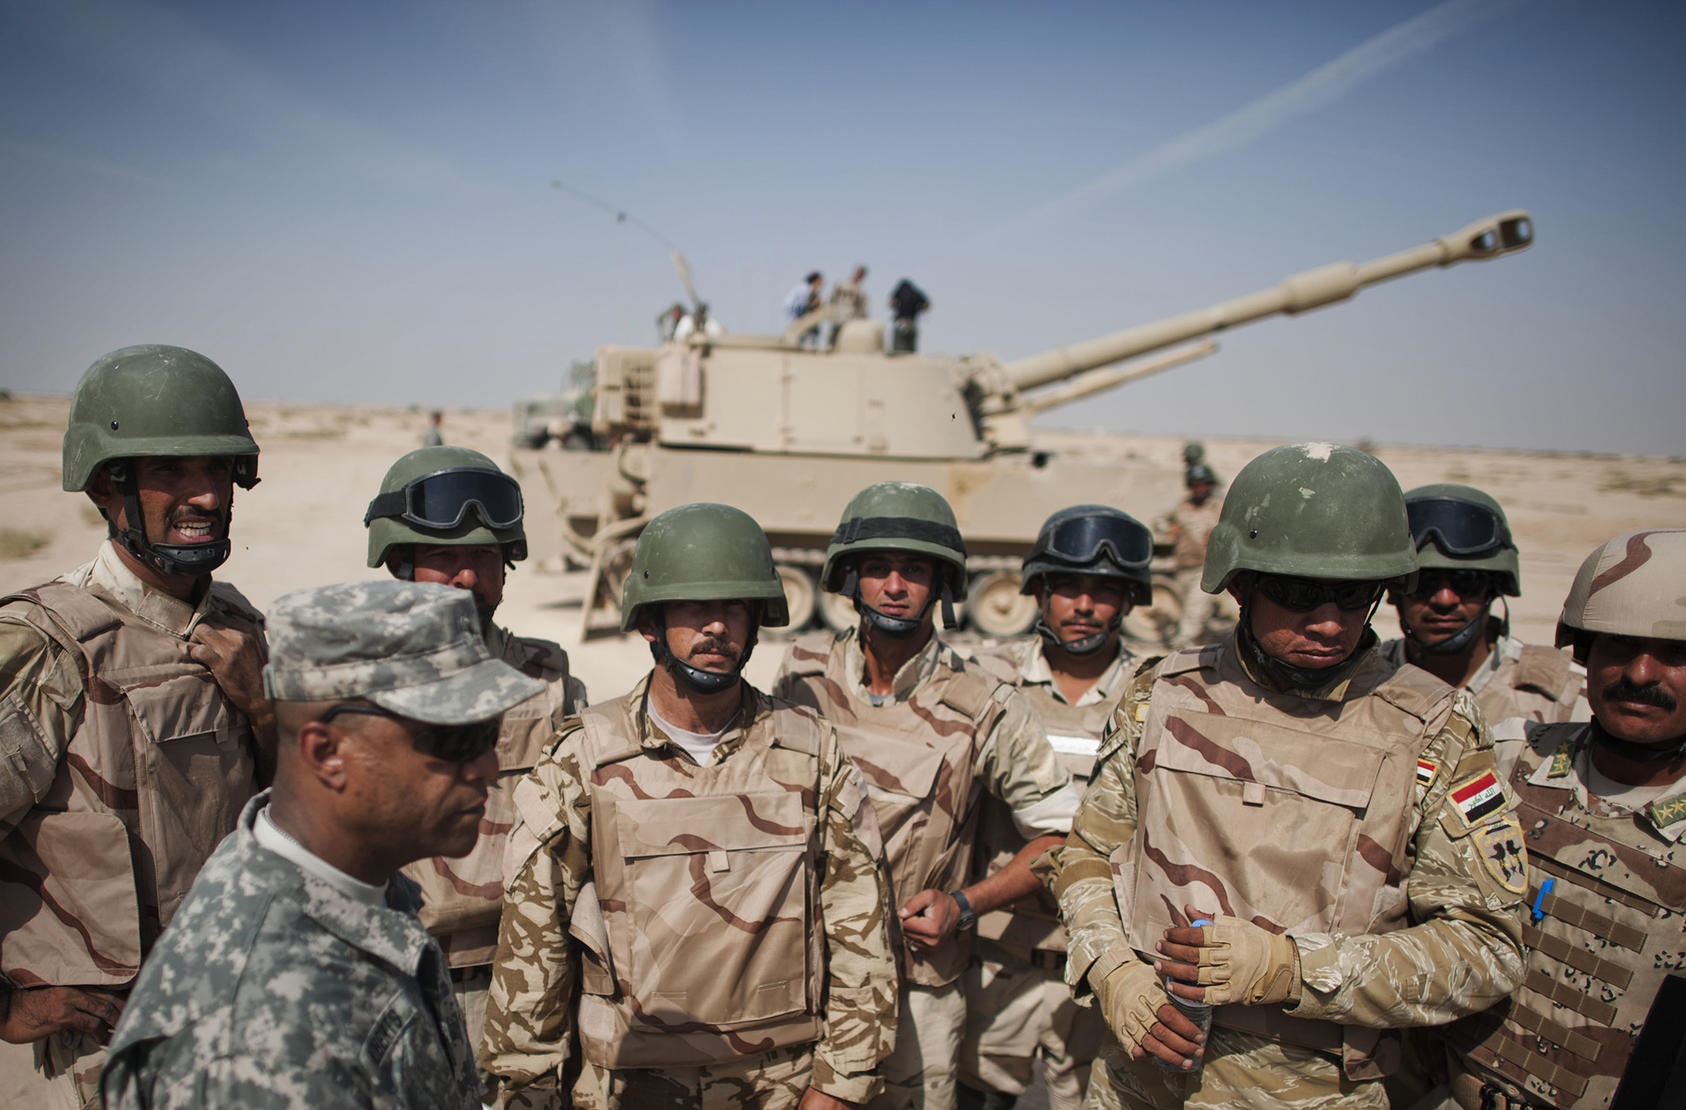 The U.S. military organizes a demonstration at the Iraqi Armor School after the Iraqi soldiers completed a 21-day tank training course, in Besmaya, Iraq, Oct. 18, 2011. (Andrea Bruce/The New York Times)